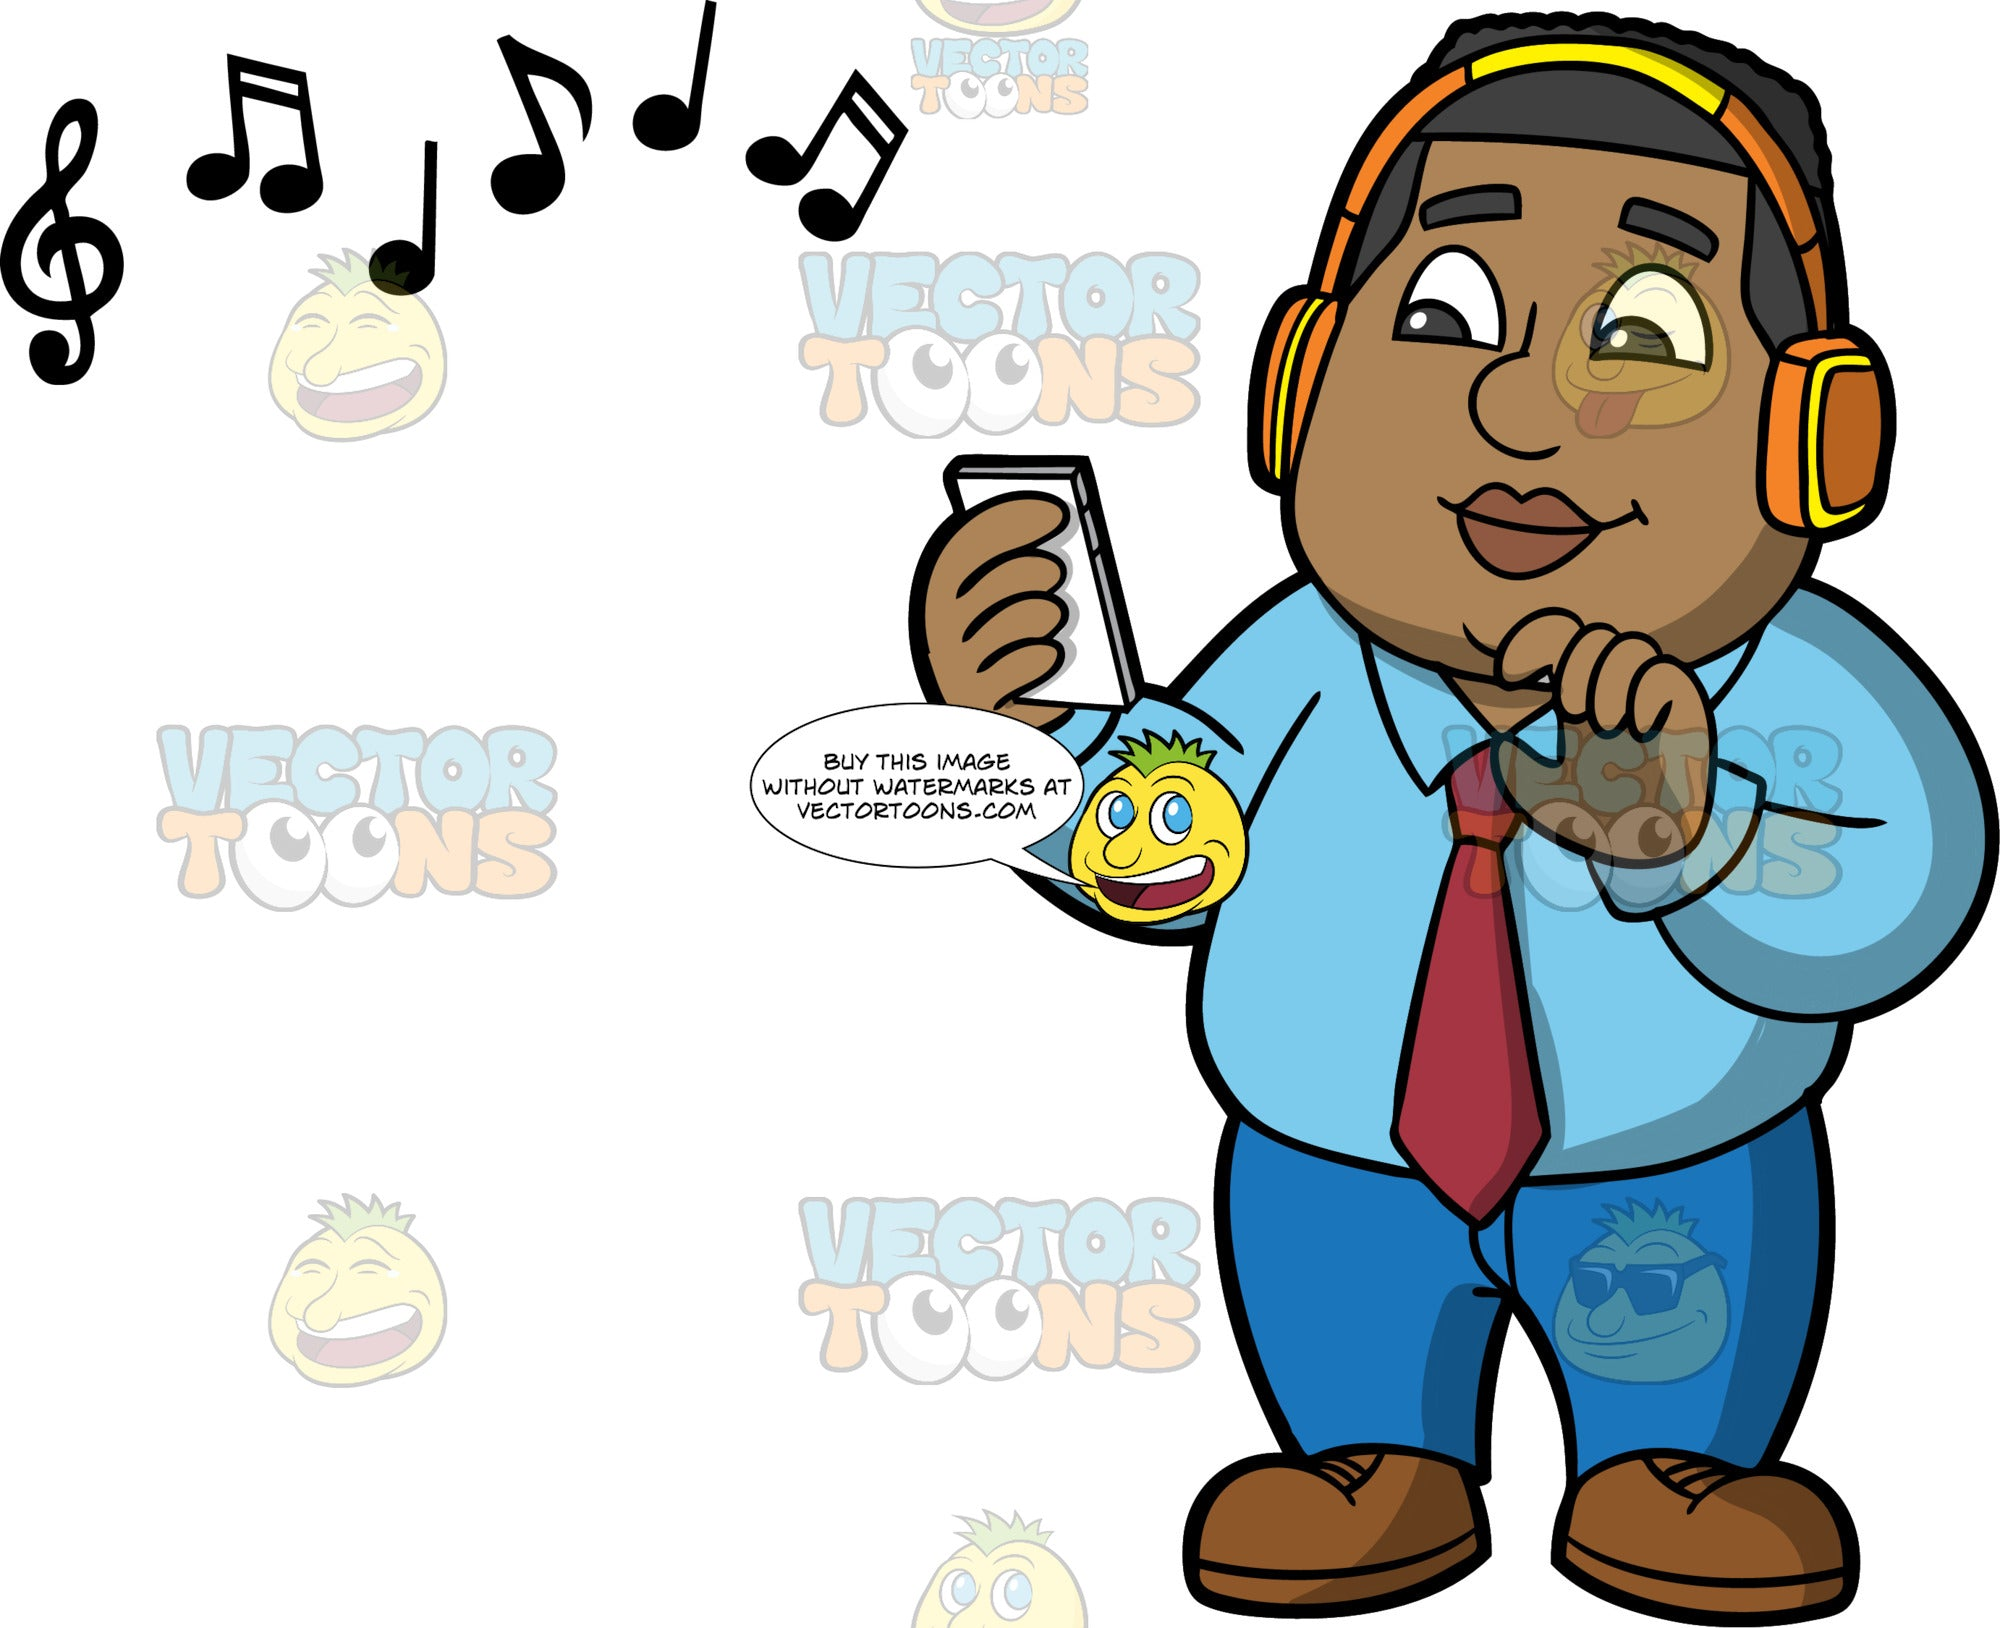 James Taking A Break To Listen To Some Music. A black man wearing blue pants, a blue shirt, red tie, and brown shoes, holding a cell phone in his hand, and listening to music on over the ear blue tooth headphones